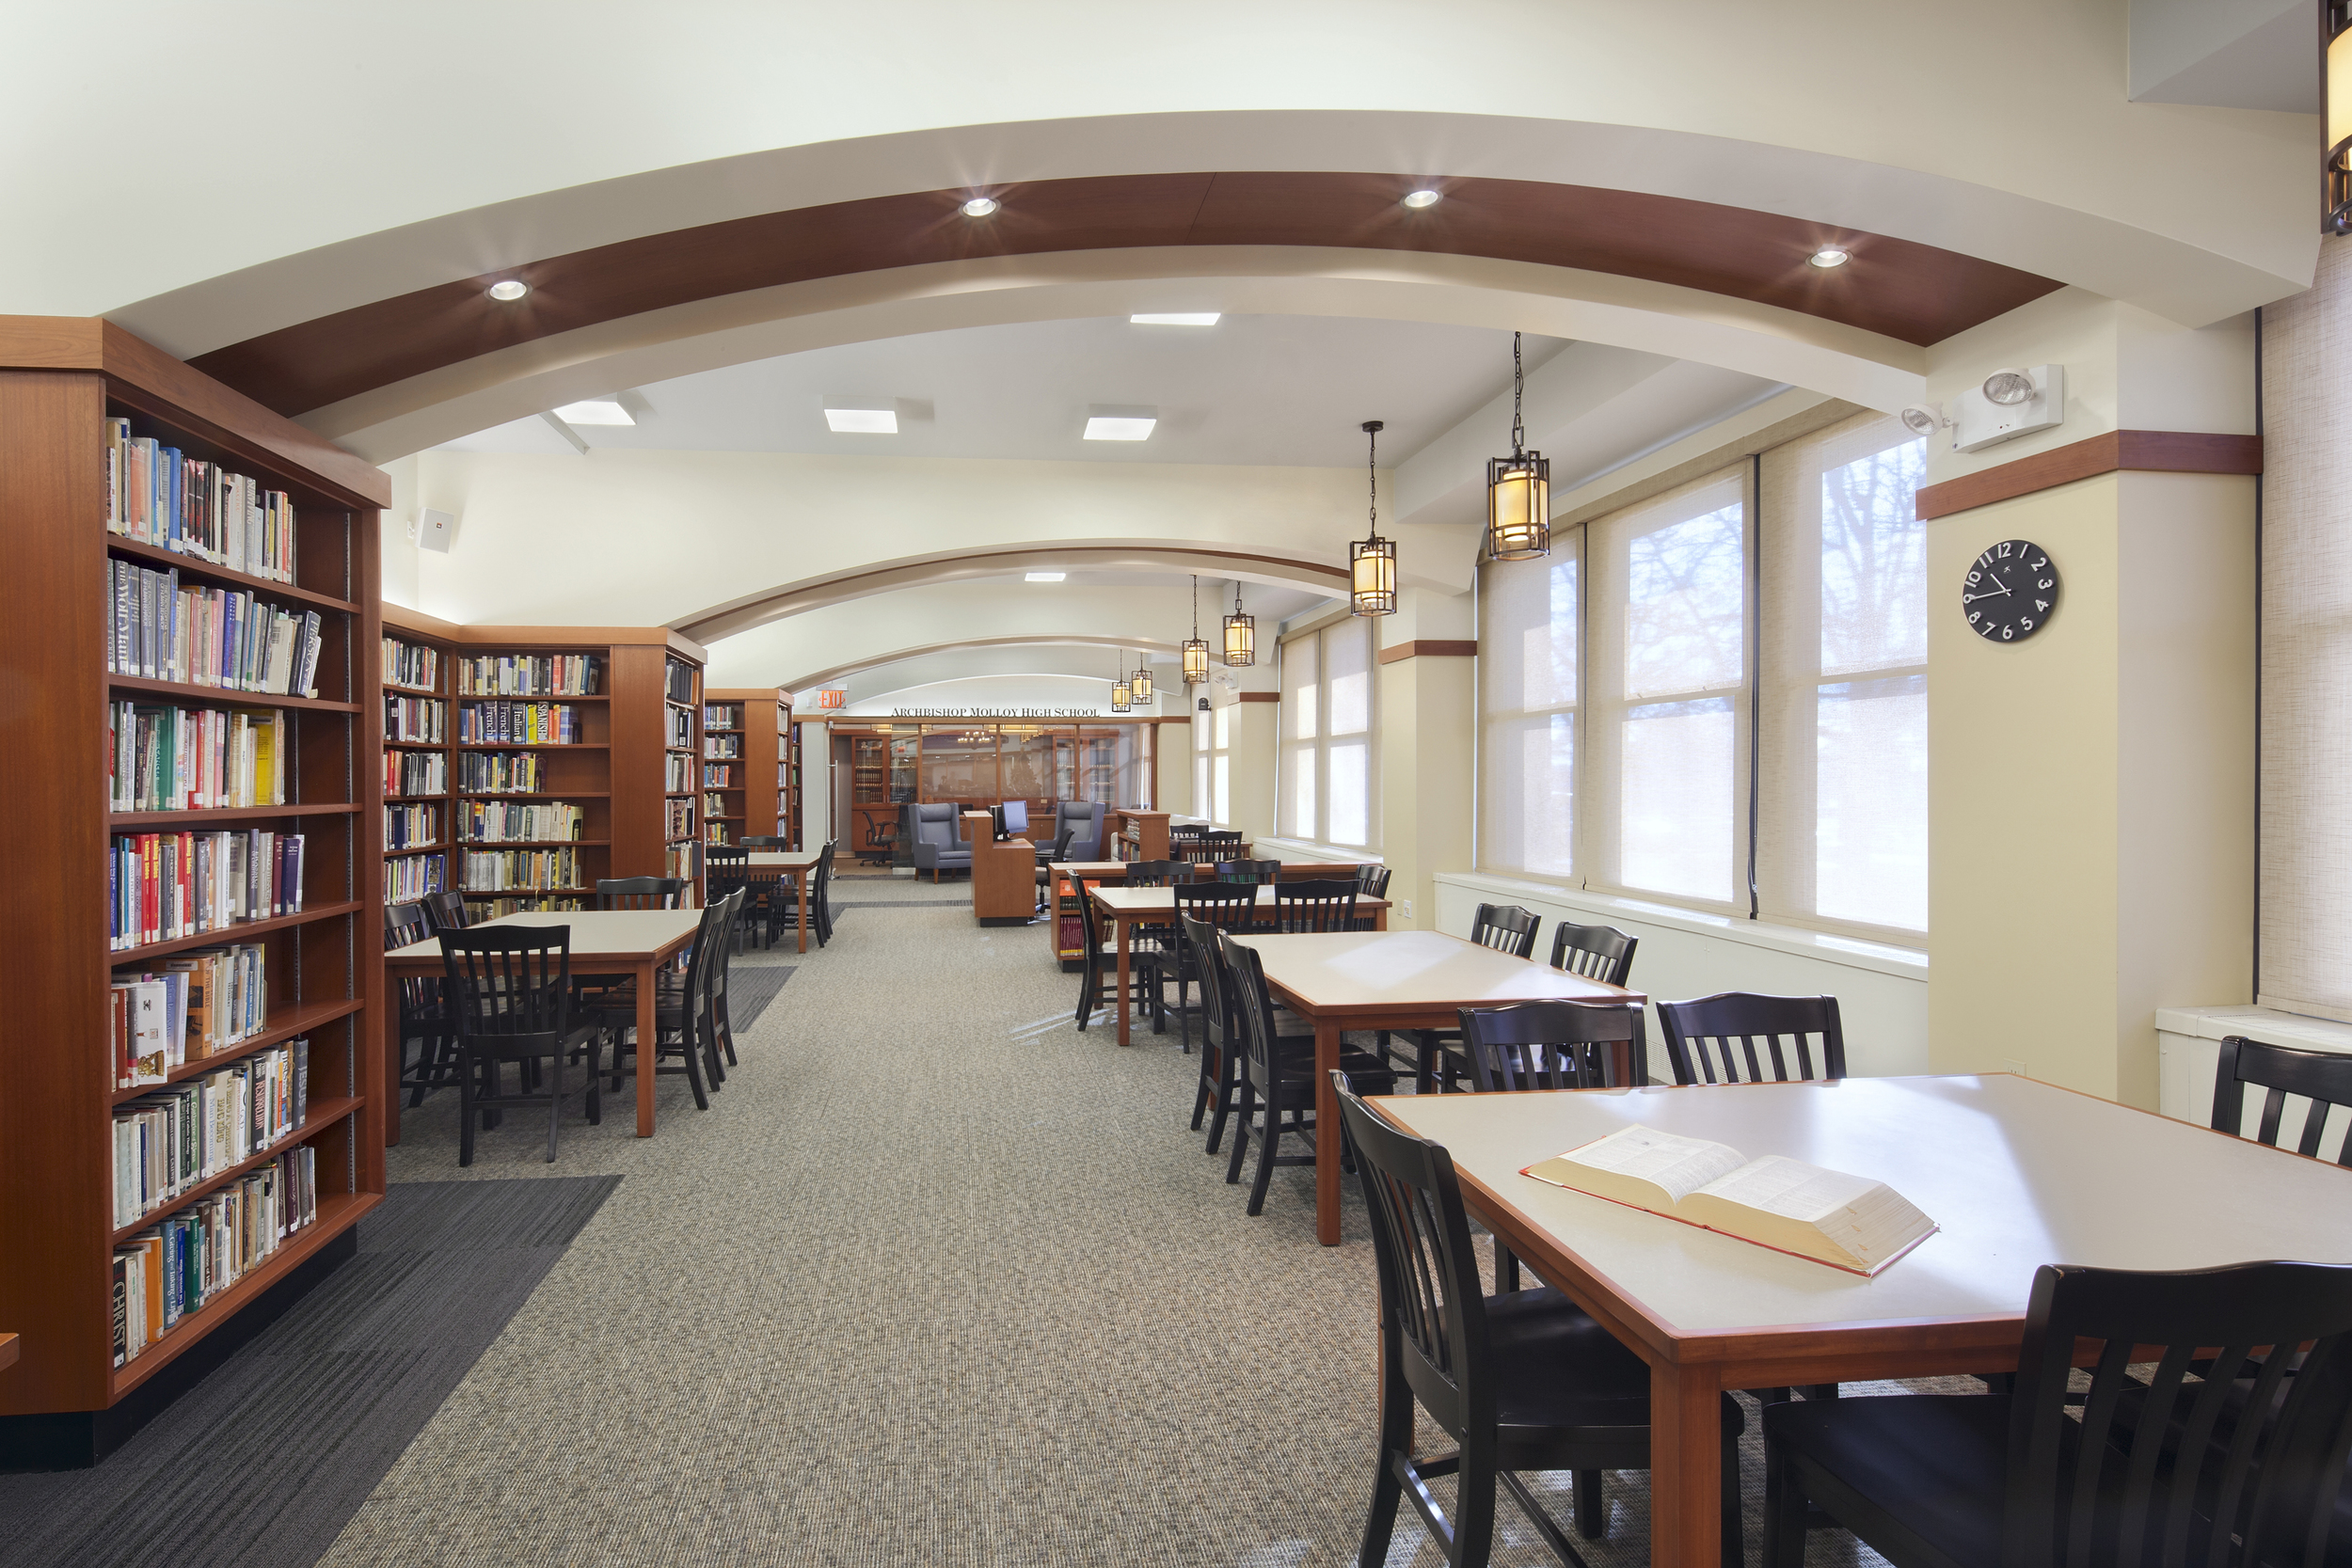 Archbishop Molloy High School. Tobin Parnes Design. Queens, New York. Cultural and Institutional. Library. Study Area.